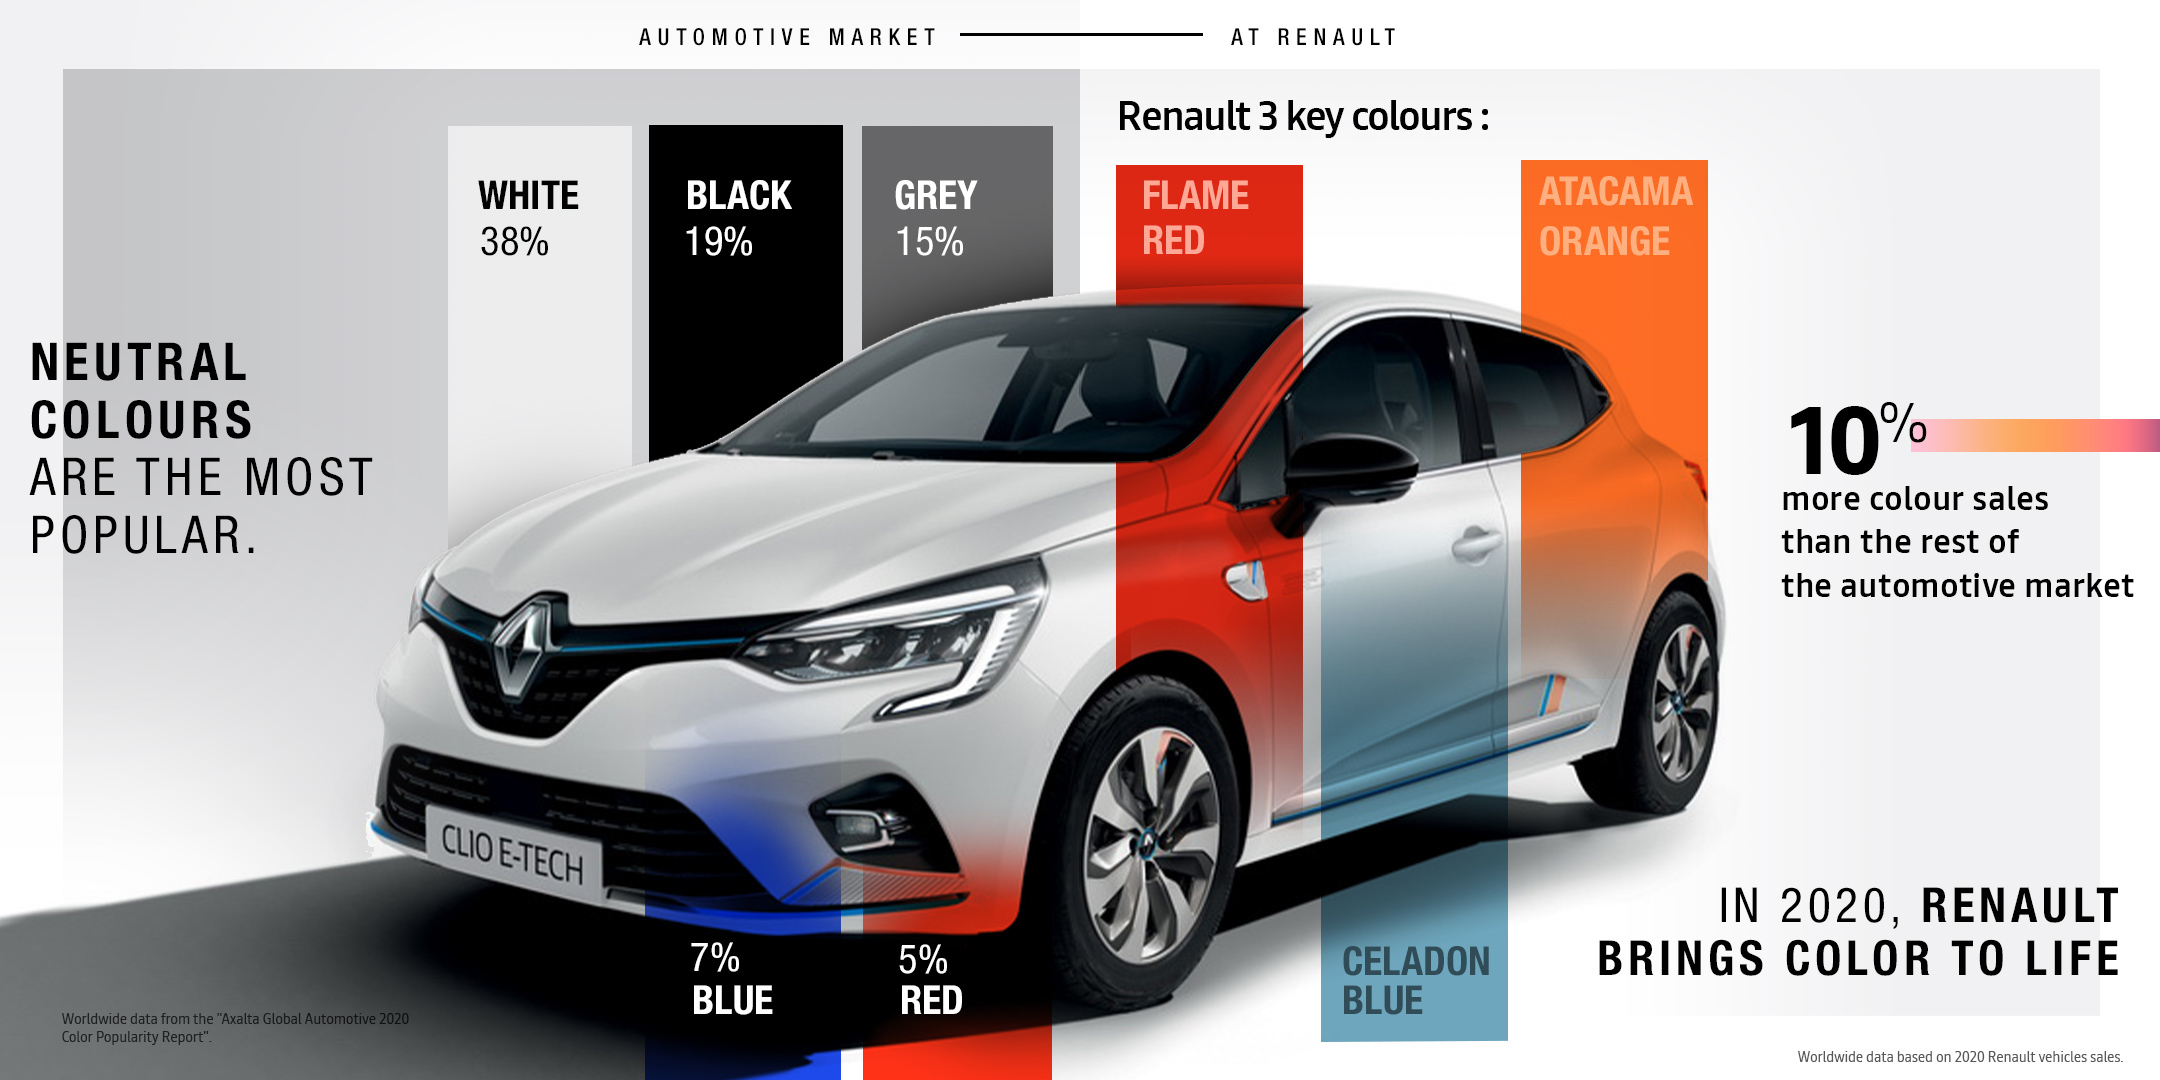 renault brings color to life